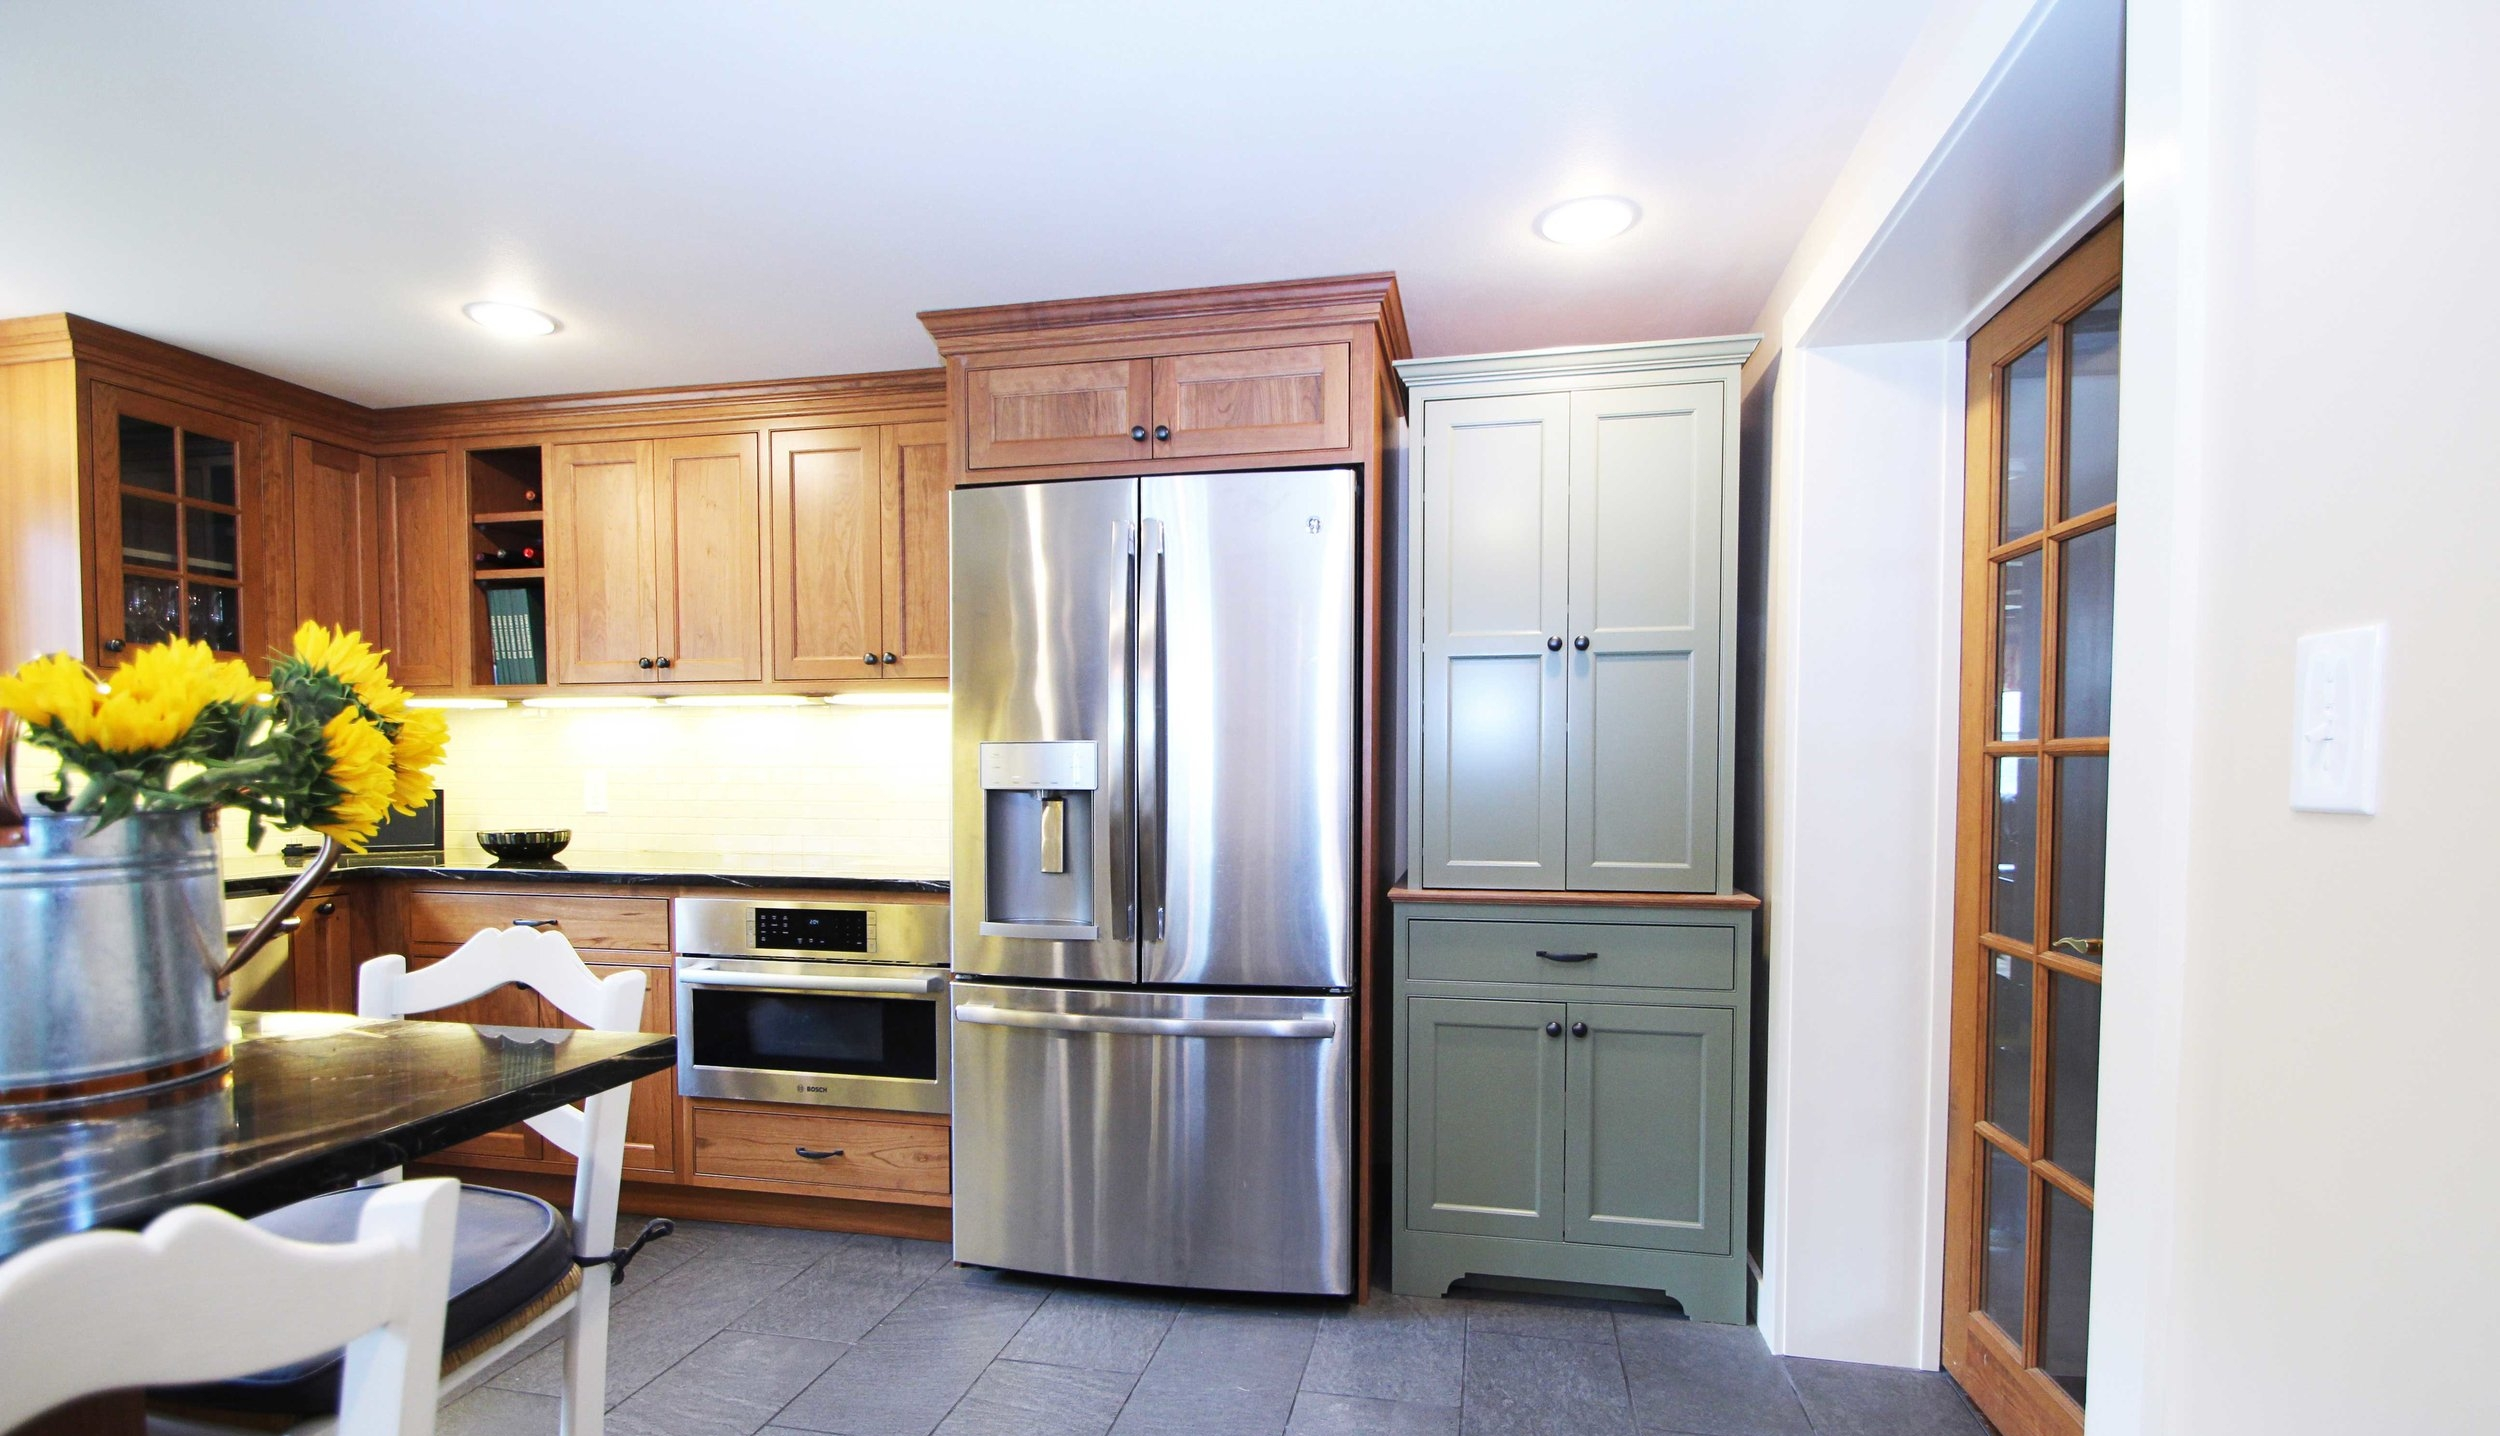 The final kitchen design made a reality.